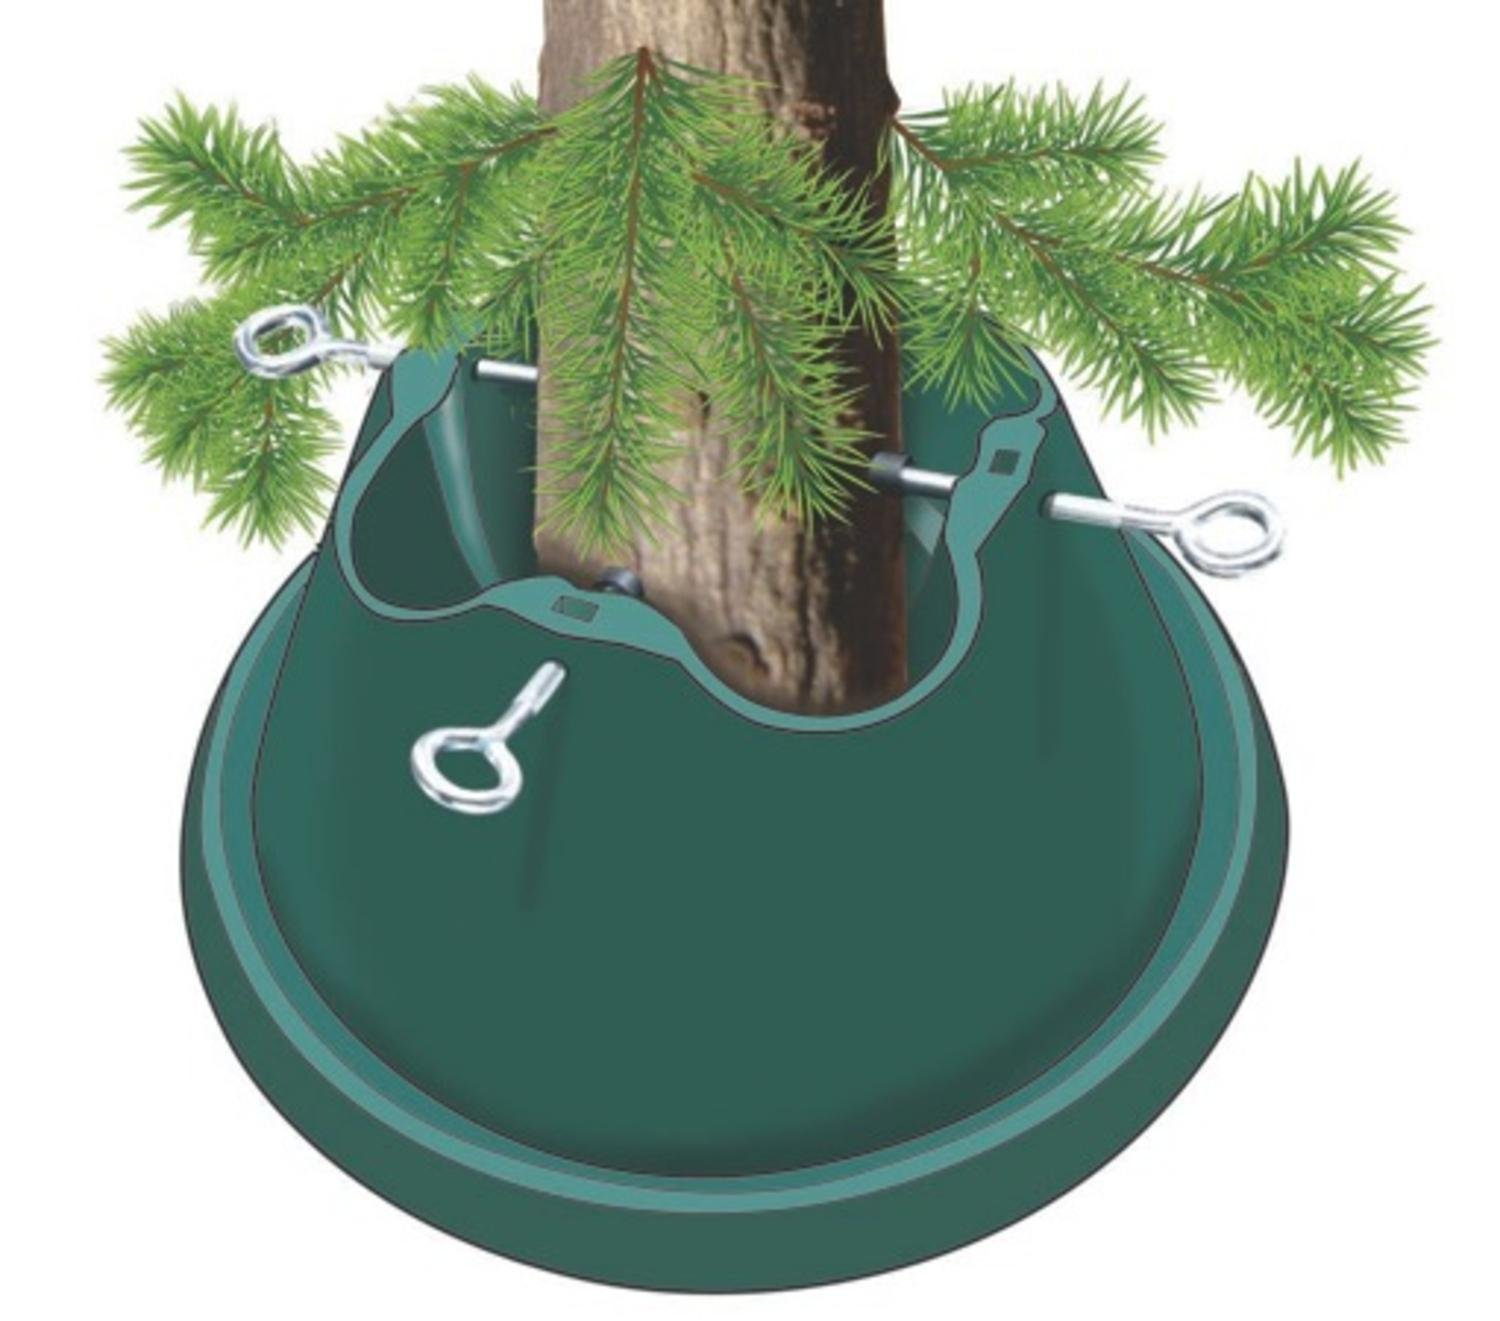 St. Nicks Choice Heavy Duty Green Easy Watering Christmas Tree Stand - For Live Trees Up To 8'